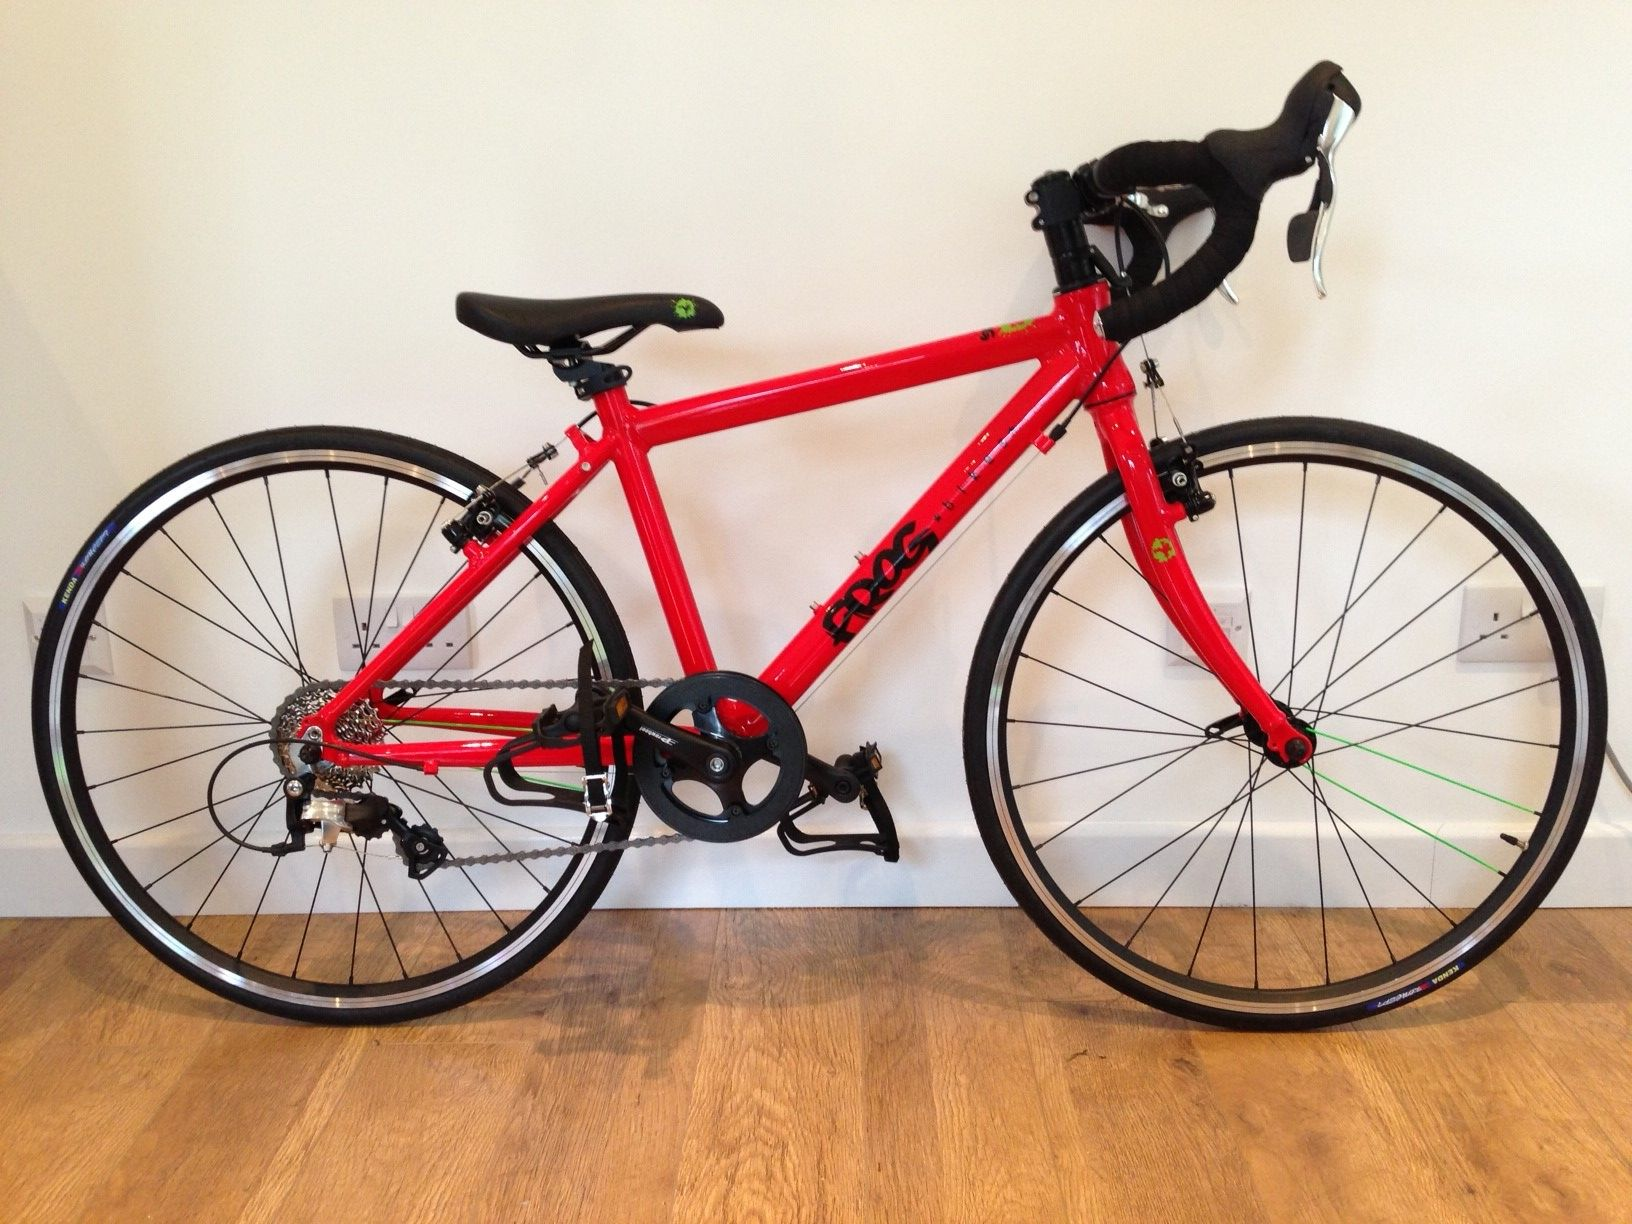 24 Road Bike Available In Red White And Black Cyclocross